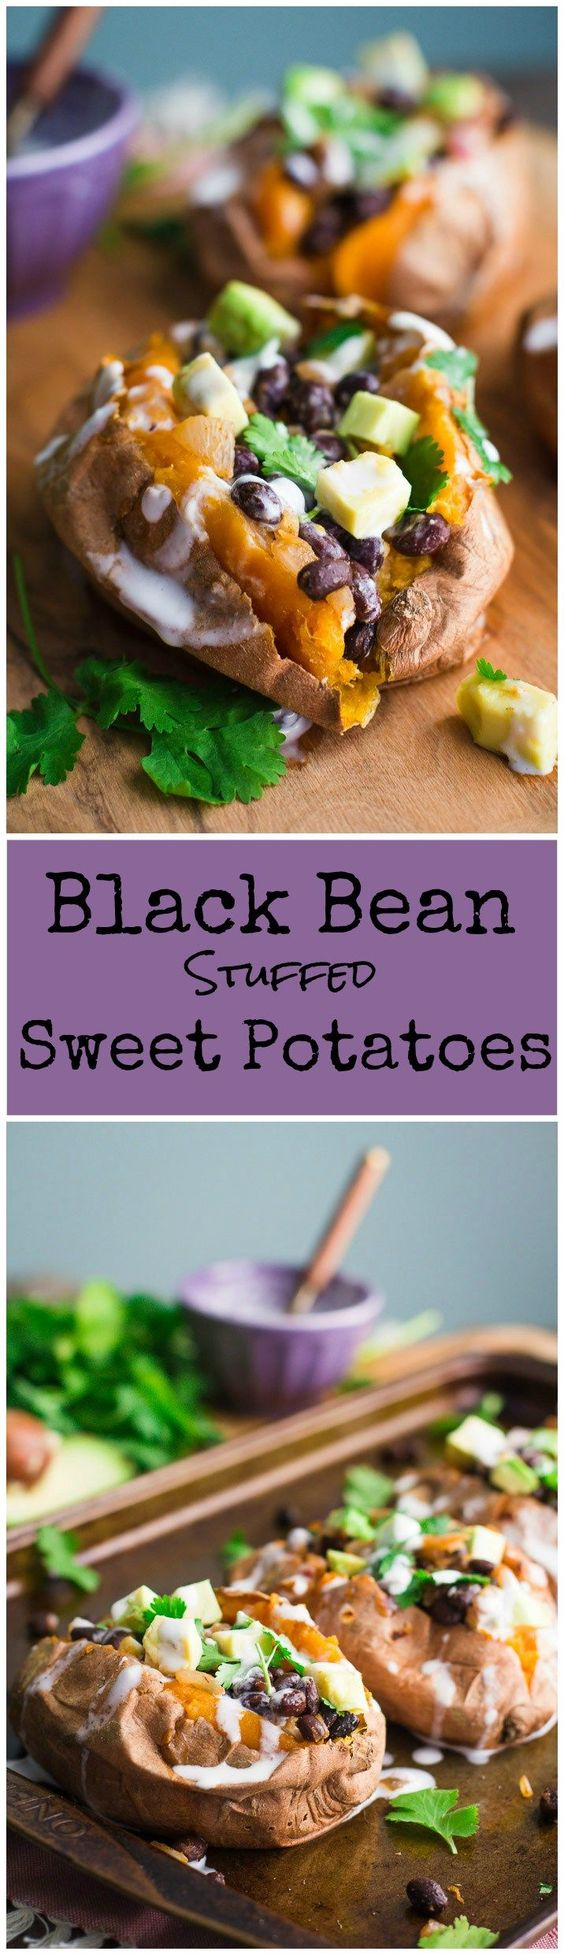 Black Bean Stuffed Sweet Potatoes Healthy Recipes on a Budget